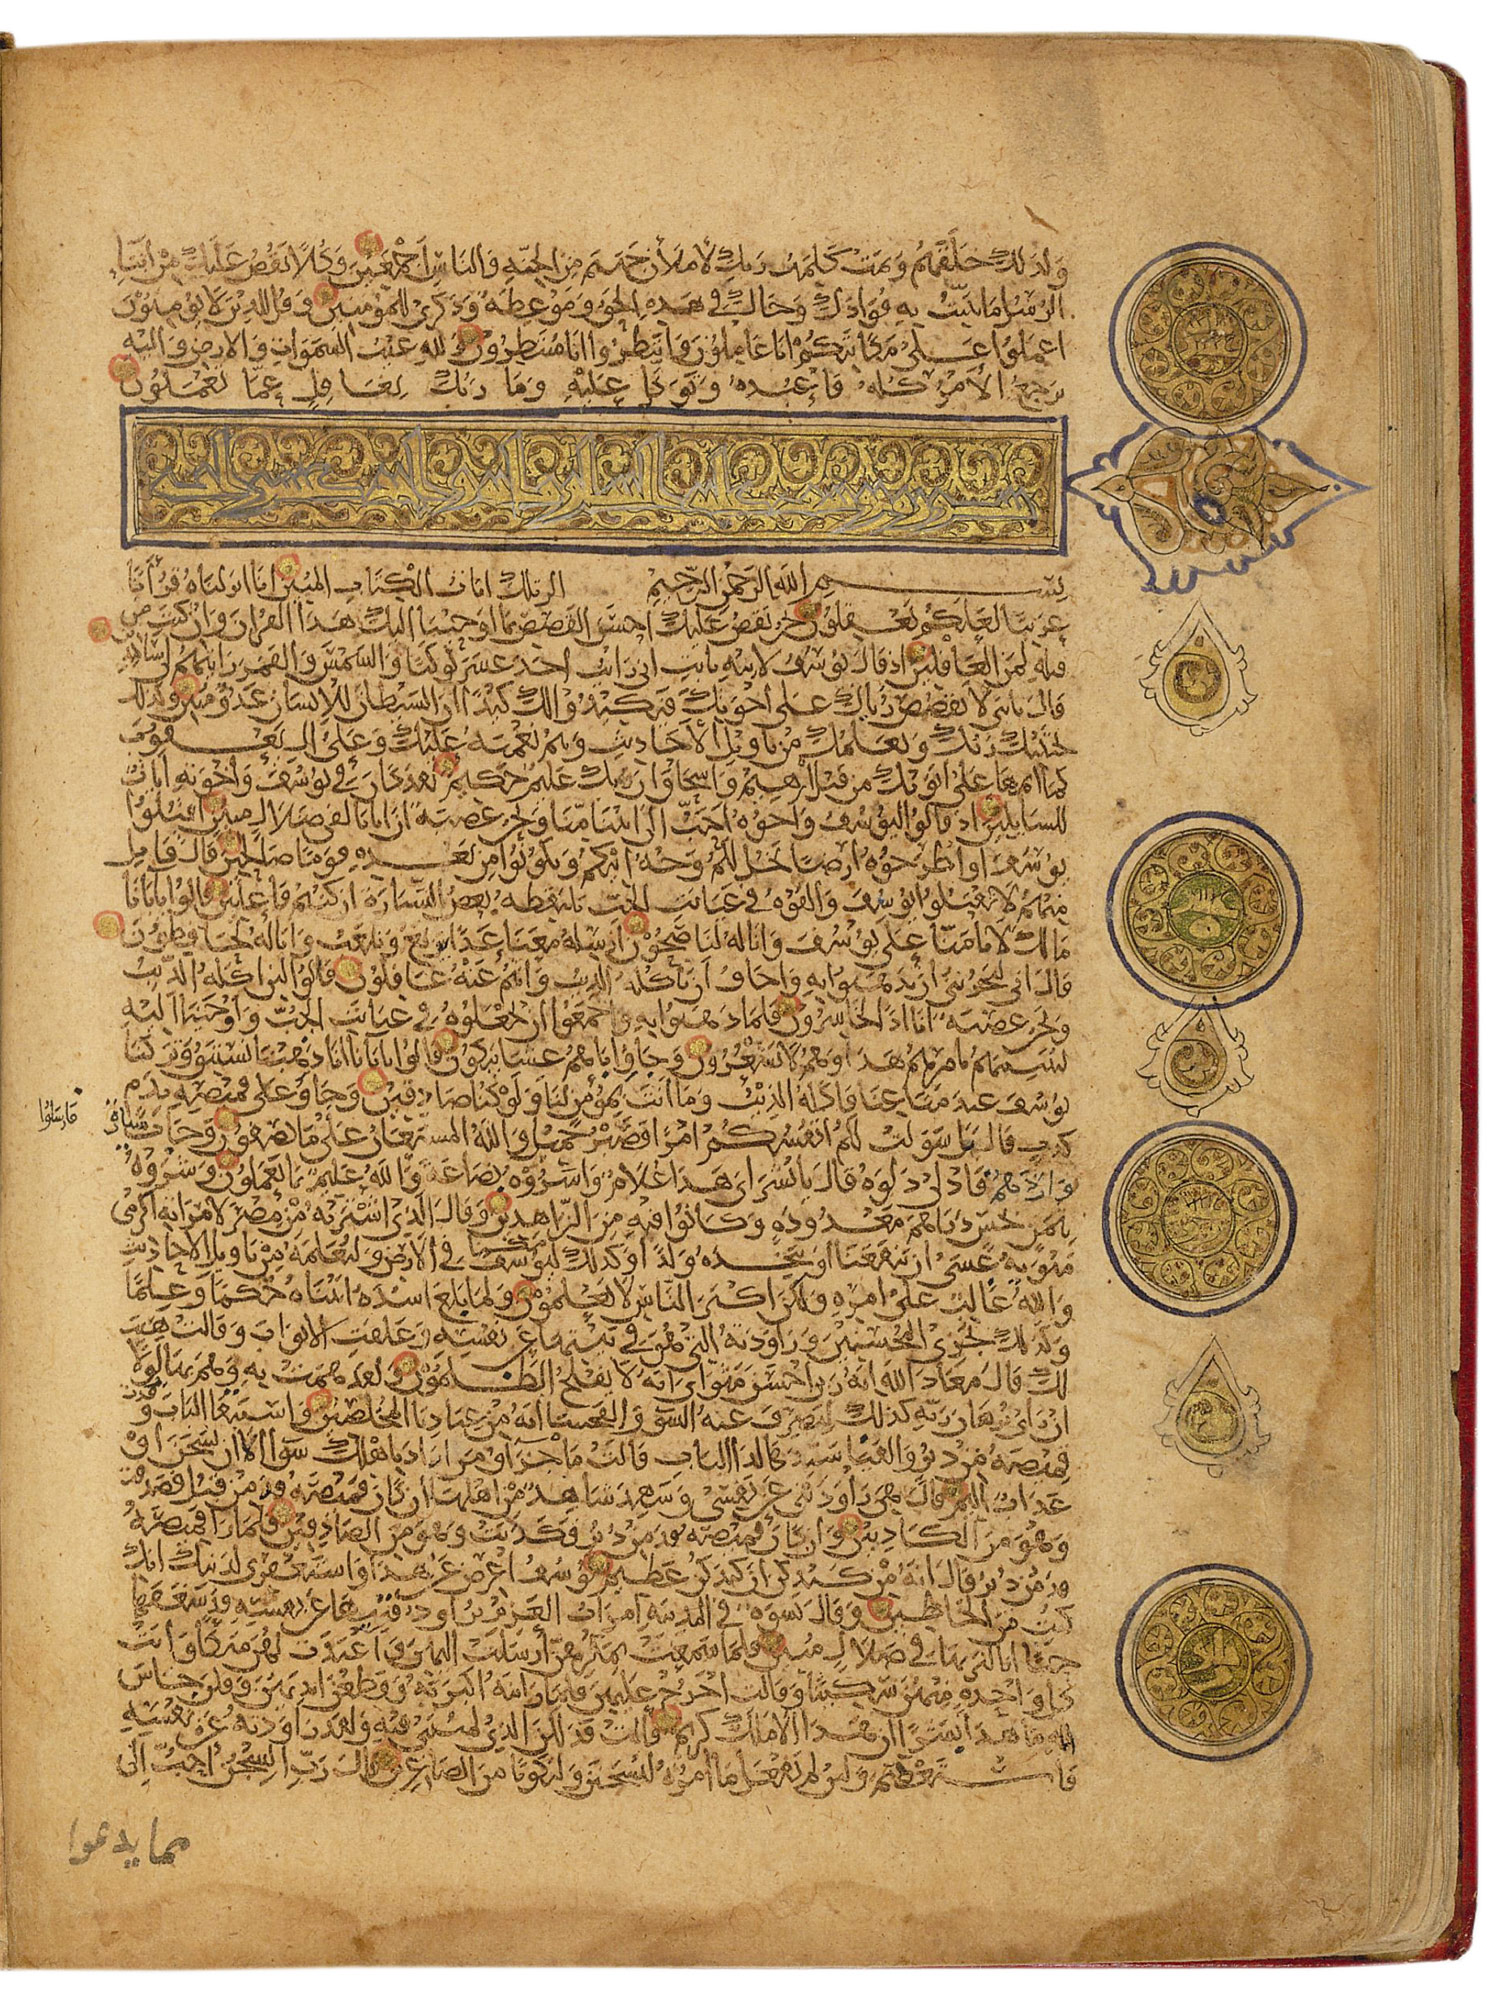 Eleventh-century Qur'an from Iraq or Persia - The British